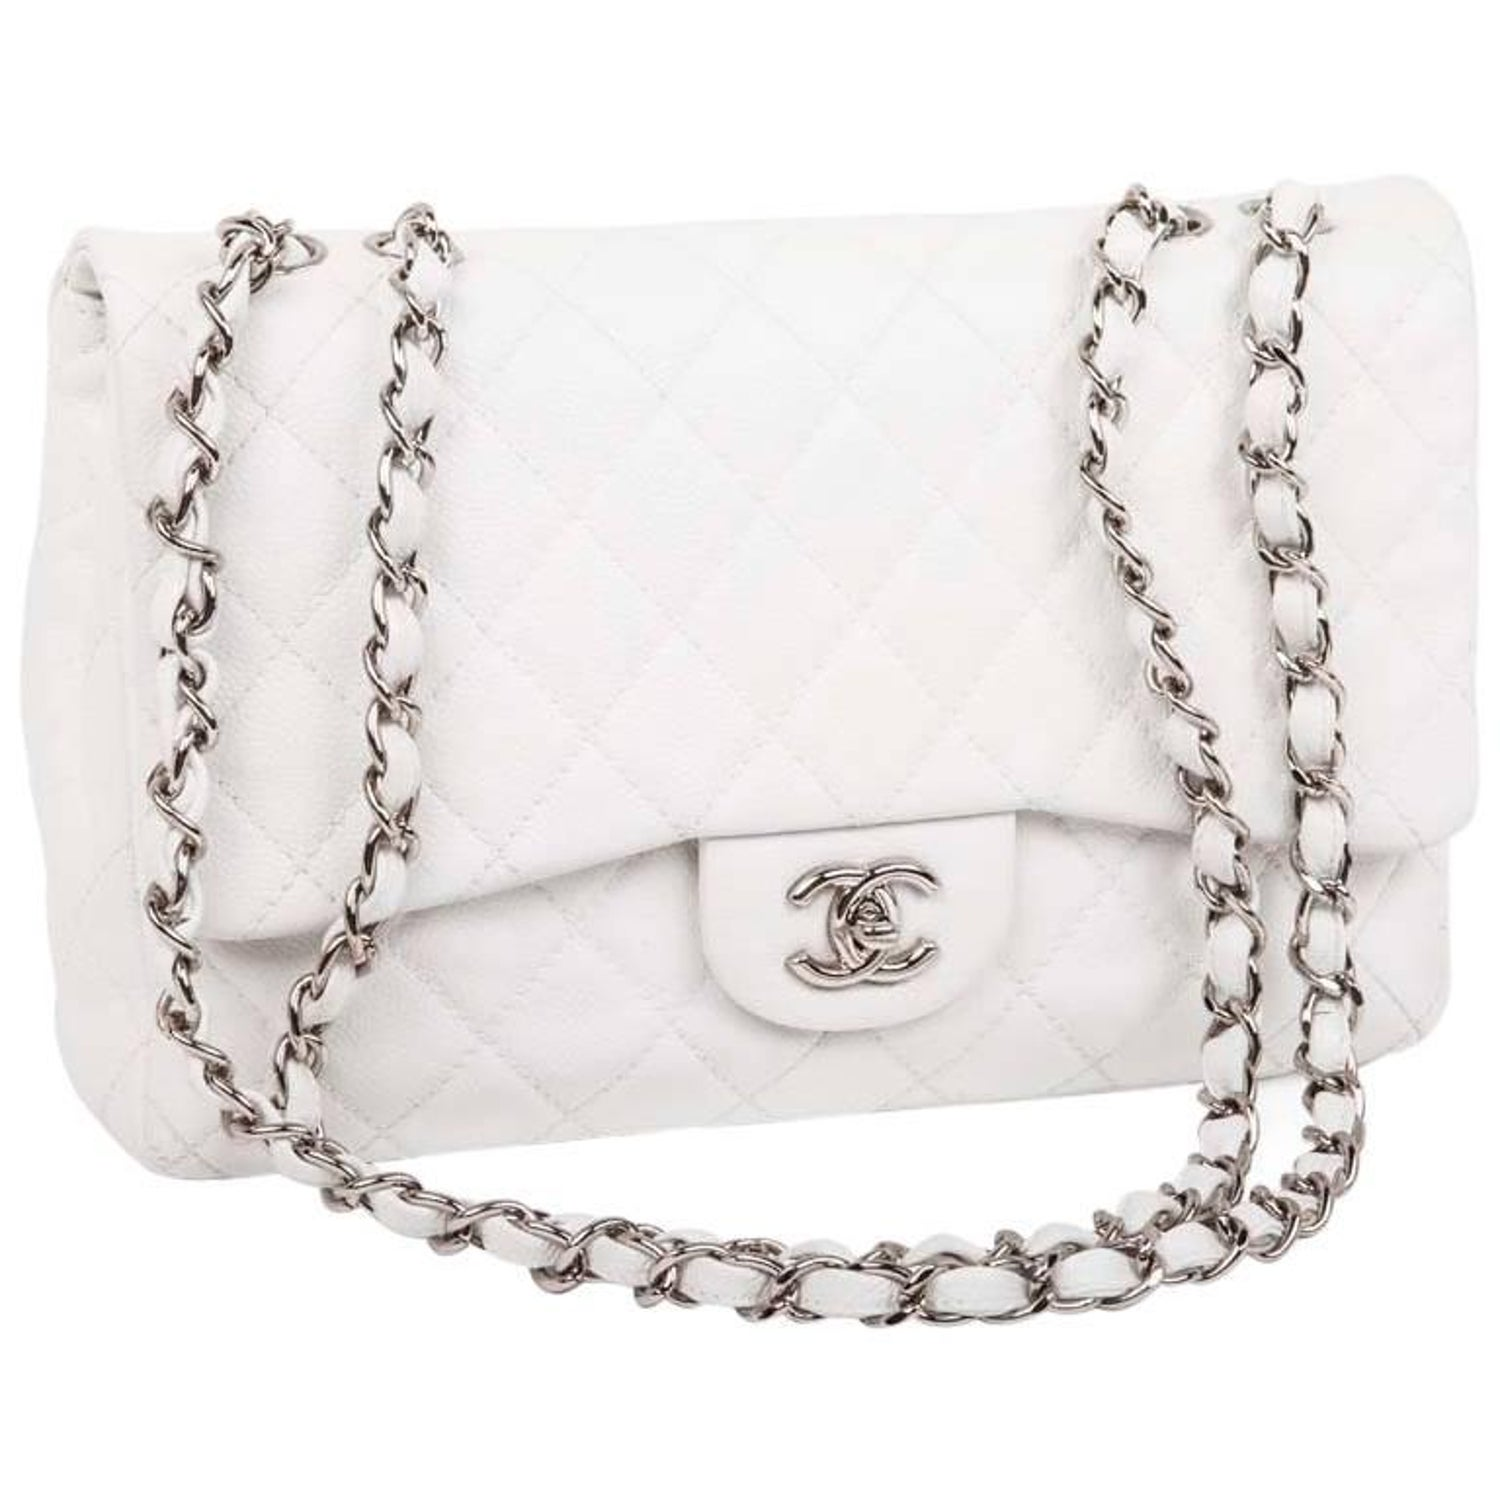 7b0c81f33a8b Chanel Jumbo Bag in White Grained Leather at 1stdibs